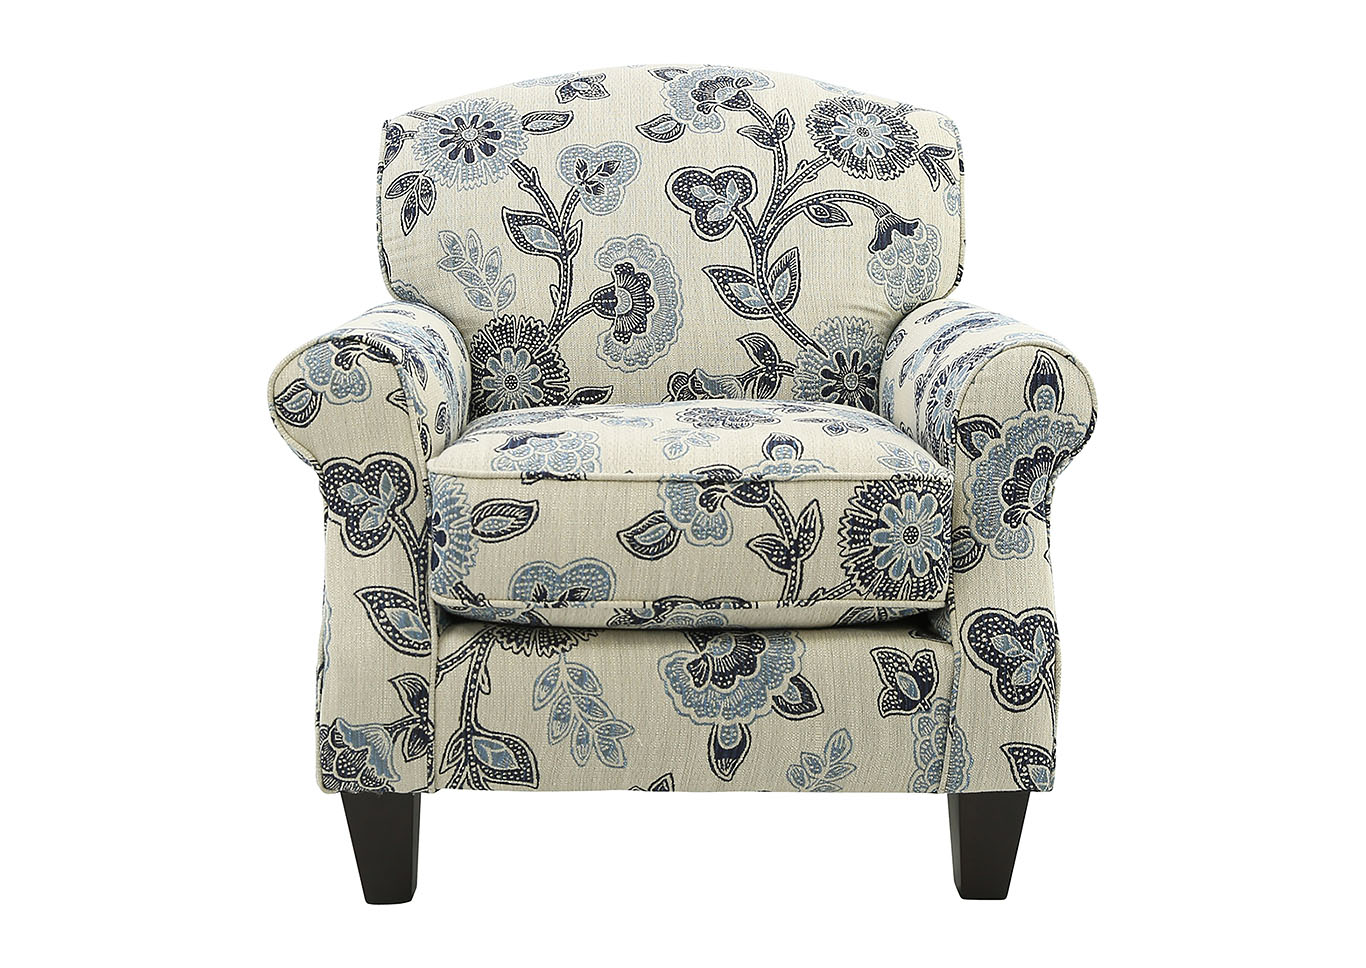 Stupendous Ivan Smith Catalina Maya Indigo Floral Accent Chair Gmtry Best Dining Table And Chair Ideas Images Gmtryco